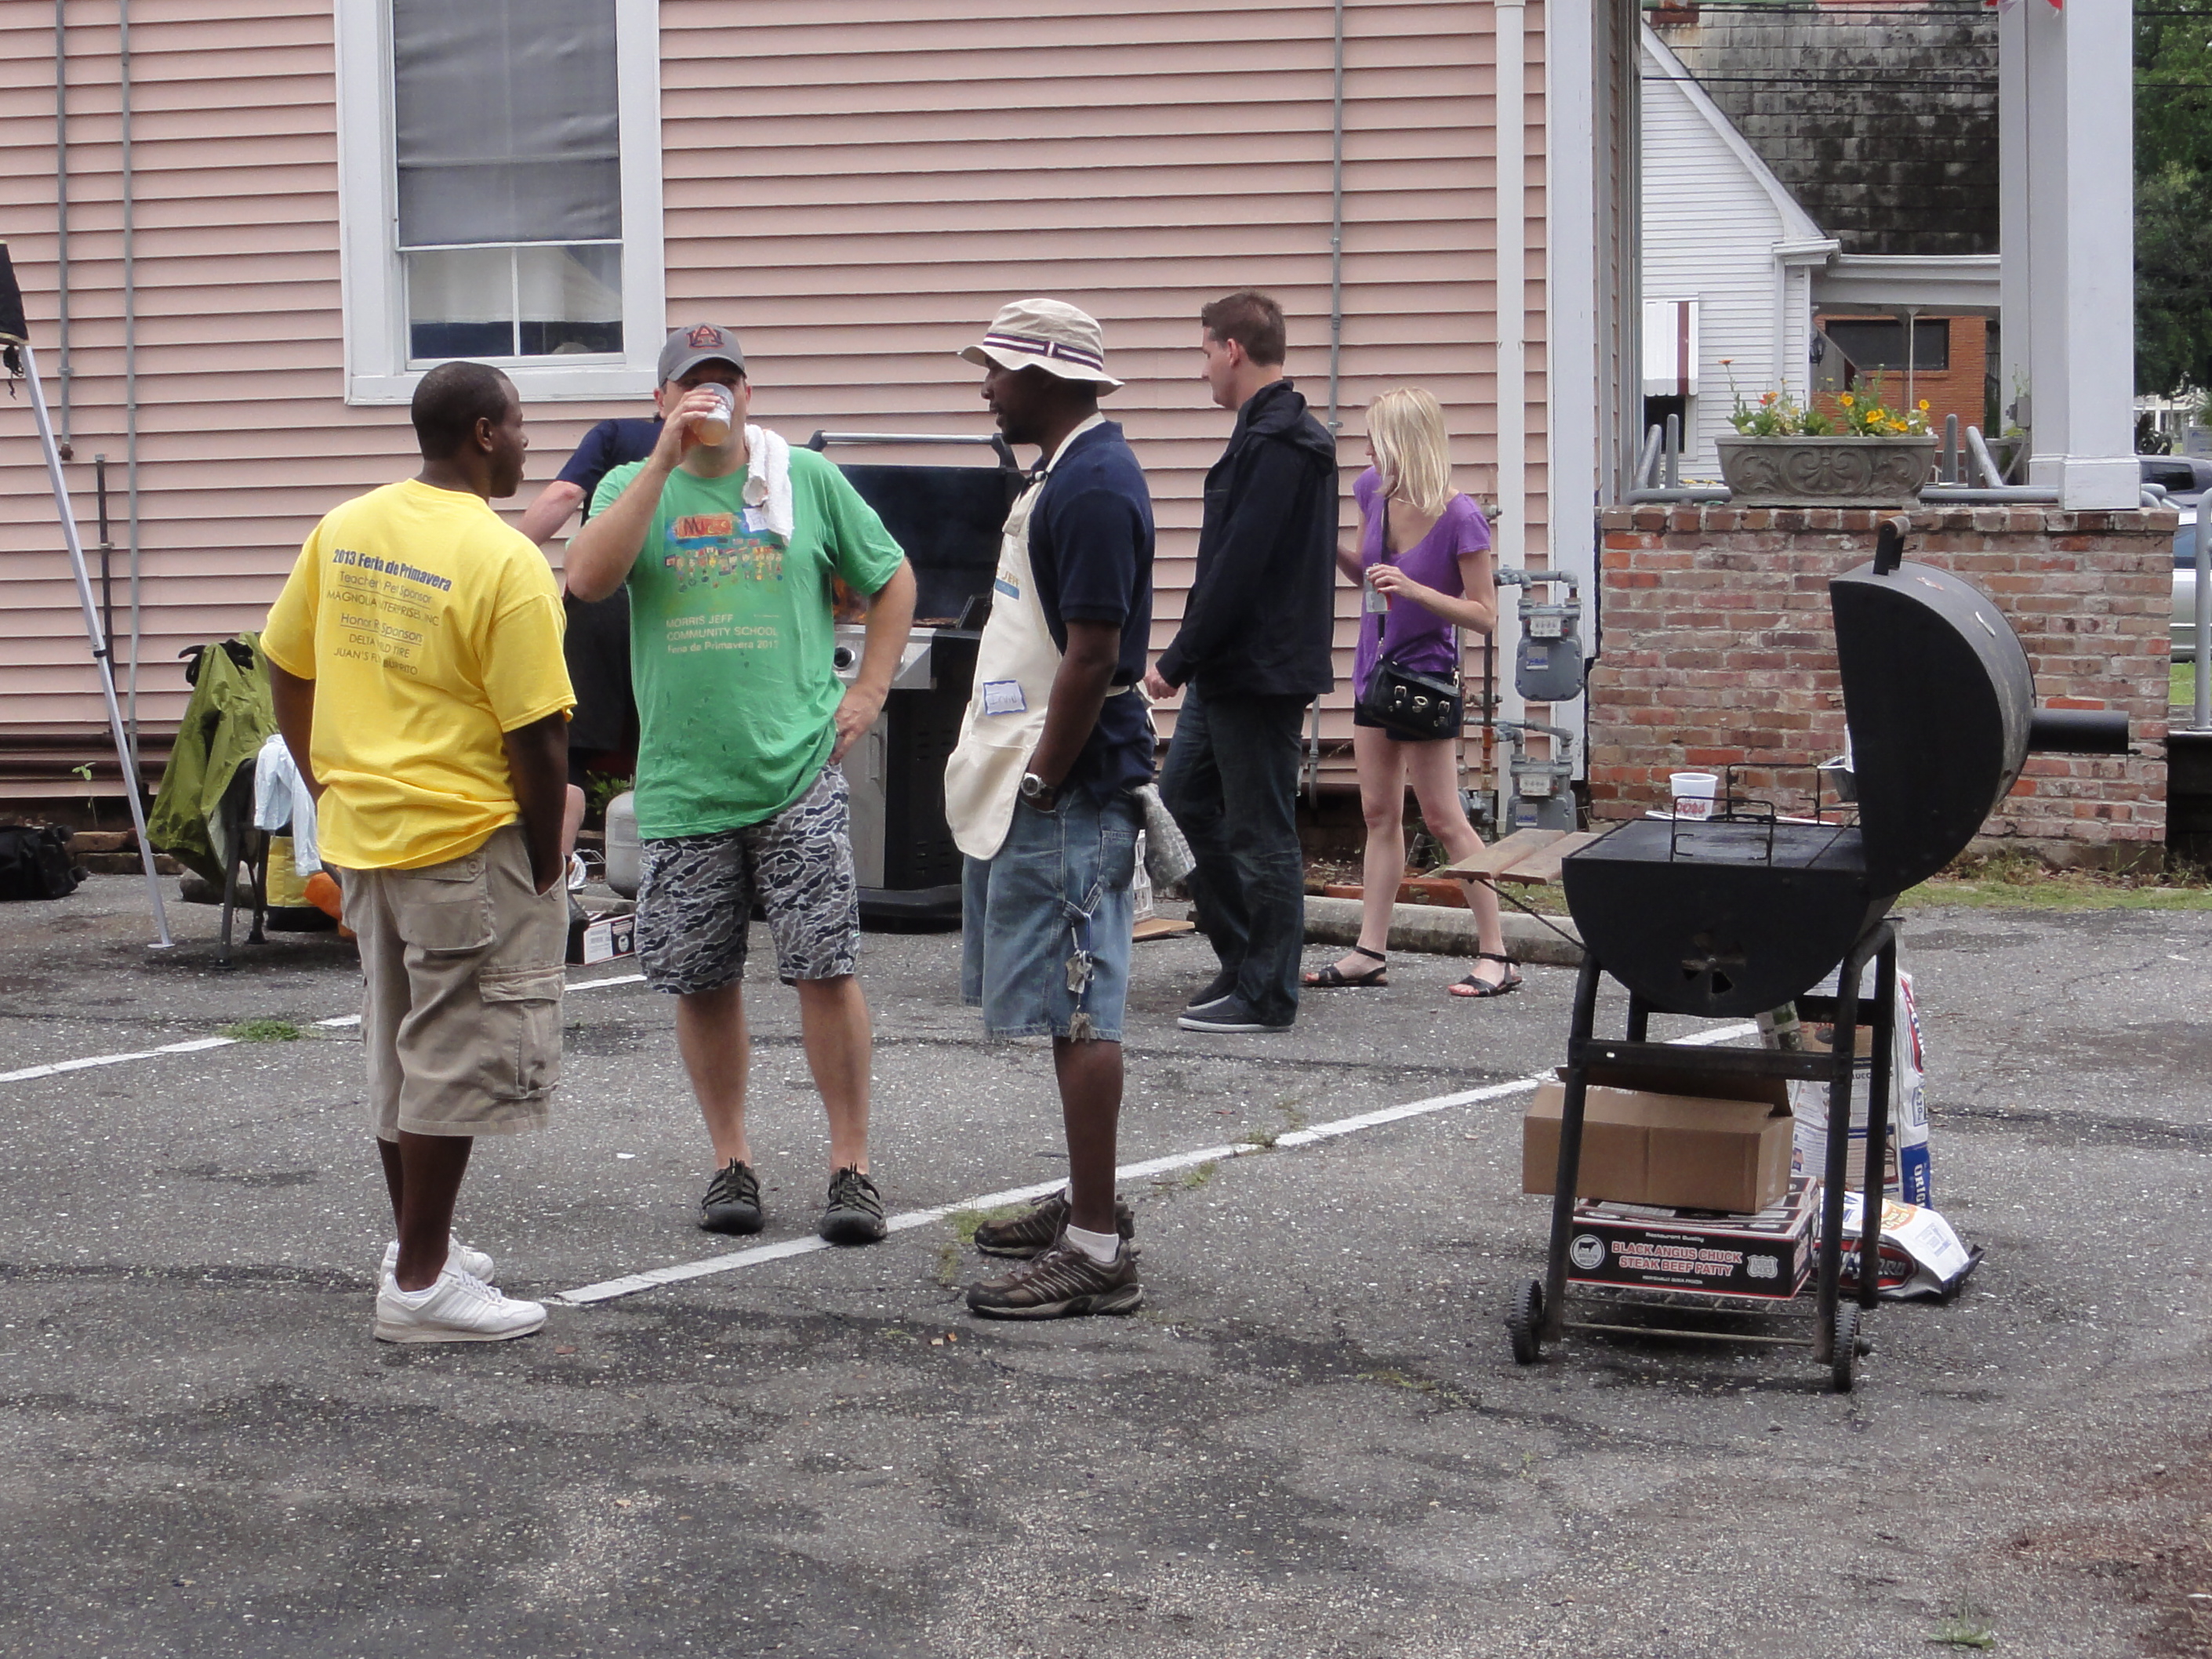 New Orleans Mid City File:grilling in Mid-city New